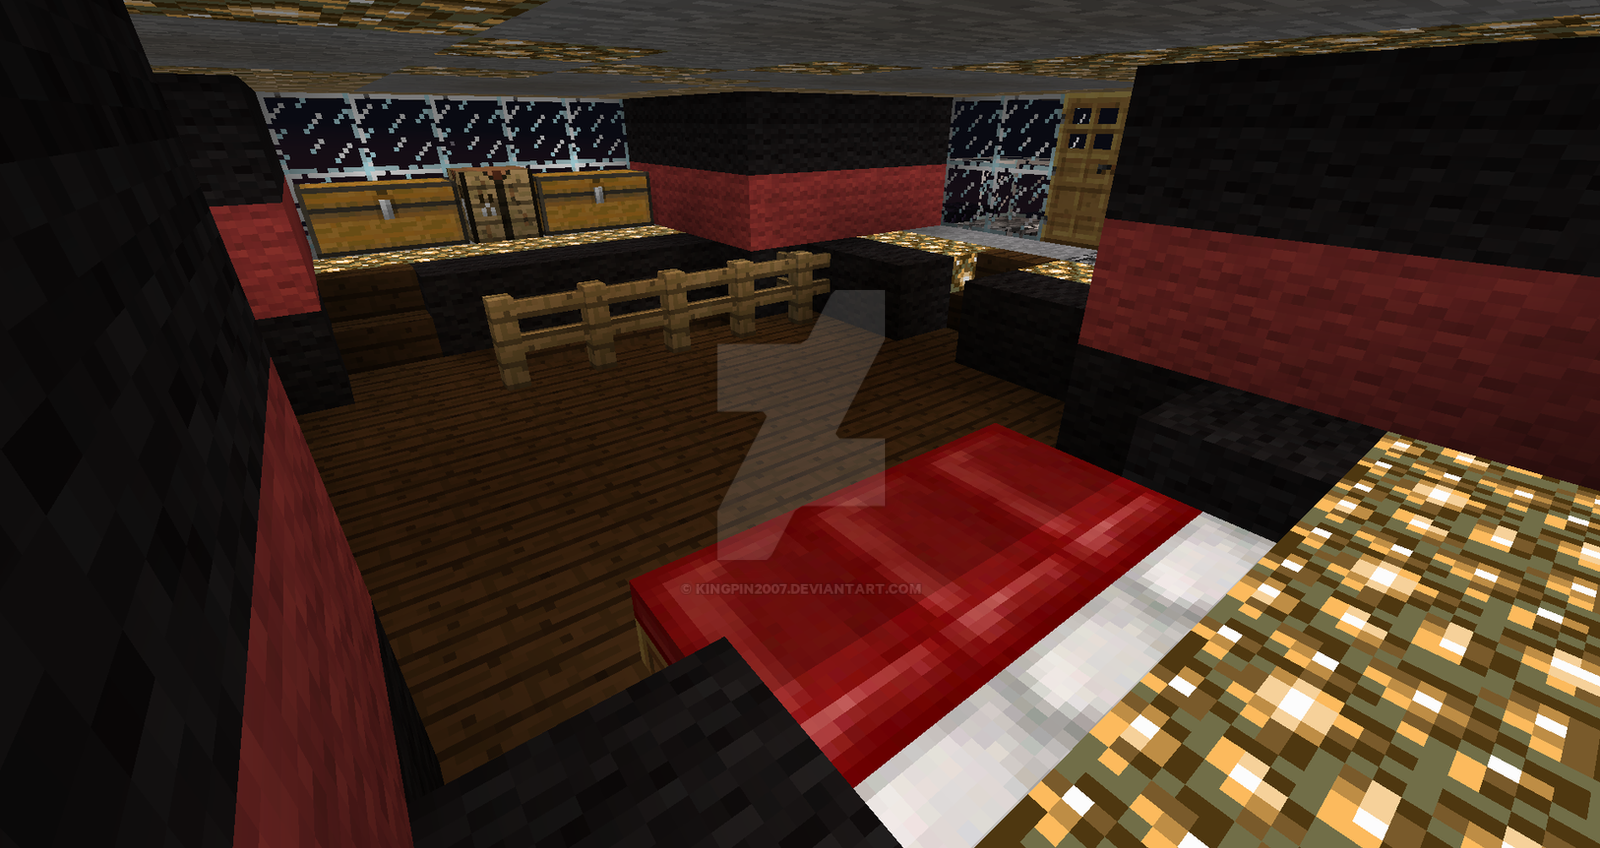 Castle master bedroom -  Castle Kp Master Bedroom Minecraft Fortress By Kingpin2007